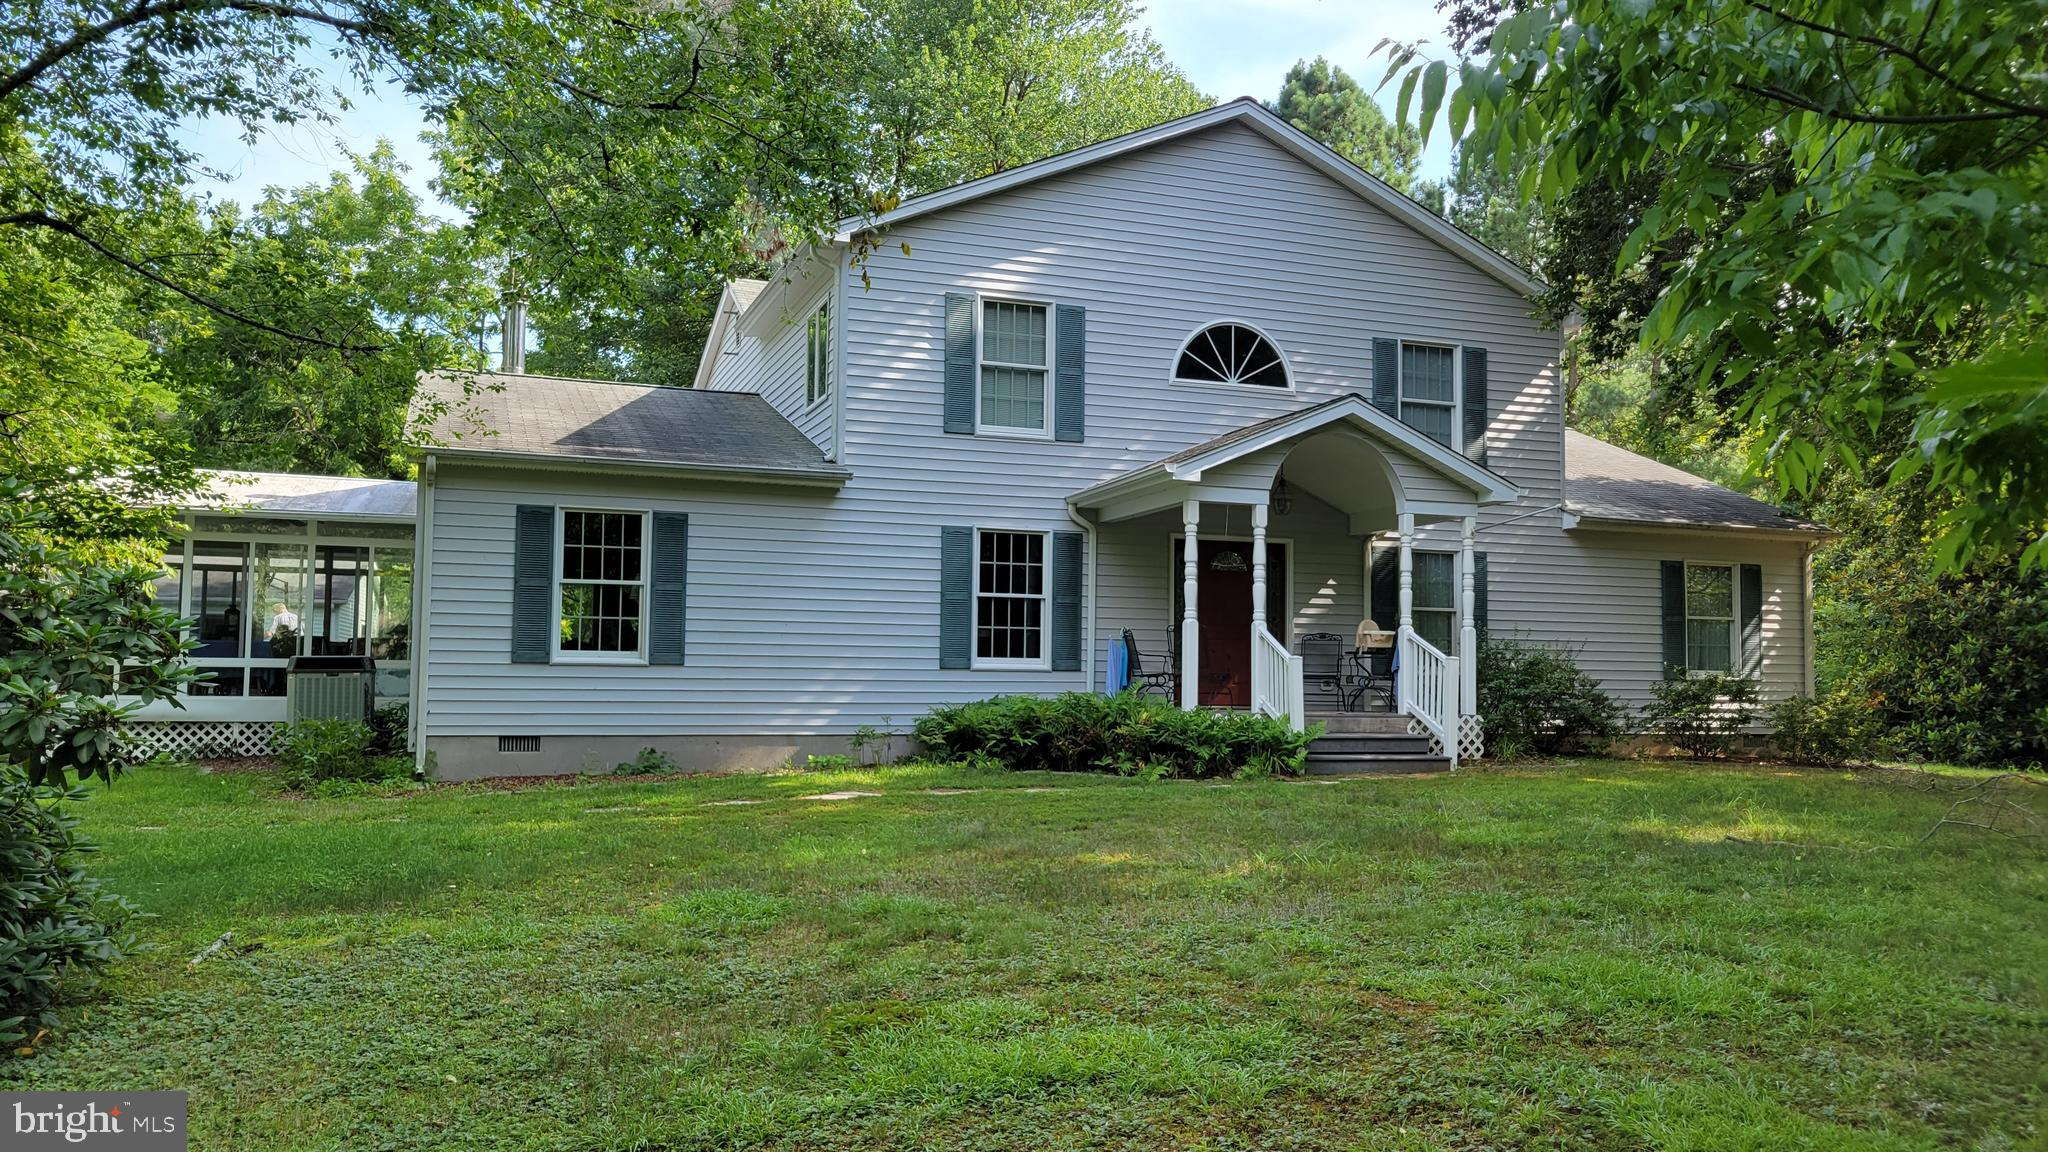 The tax record may say this home was Built-in 1876 But that is only the original 4 rooms! There were additions/renovations performed in 1937,  1957, 1987, 2000, and the most recently in 2012! So much so that the original four room house is now over 3,600 square feet! Included in this spacious home is an enormous Main bedroom suite consisting of an approximately 15x28 bedroom with its own gas fireplace, and his/her walk-in closets  leading to a spacious private bath with large walk-in shower and double vanity.  Also downstairs, there is a HUGE family room adjacent to the modernized kitcgen, a separate living room, a library/office,  a sitting room off the kitcben, a beautiful, large sunroom, and one more full bath as well as a powder room. Upstairs you will find three more bedrooms, a full bath, and another room that could be a bedroom NTC. All this on 1.23 acres in a private, quiet neighborhood. And did i mention the HUGE approximately 48x28 detached garage with 3 bays and a work area on a paved driveway?? The large separate carport also??? What are you waiting for??